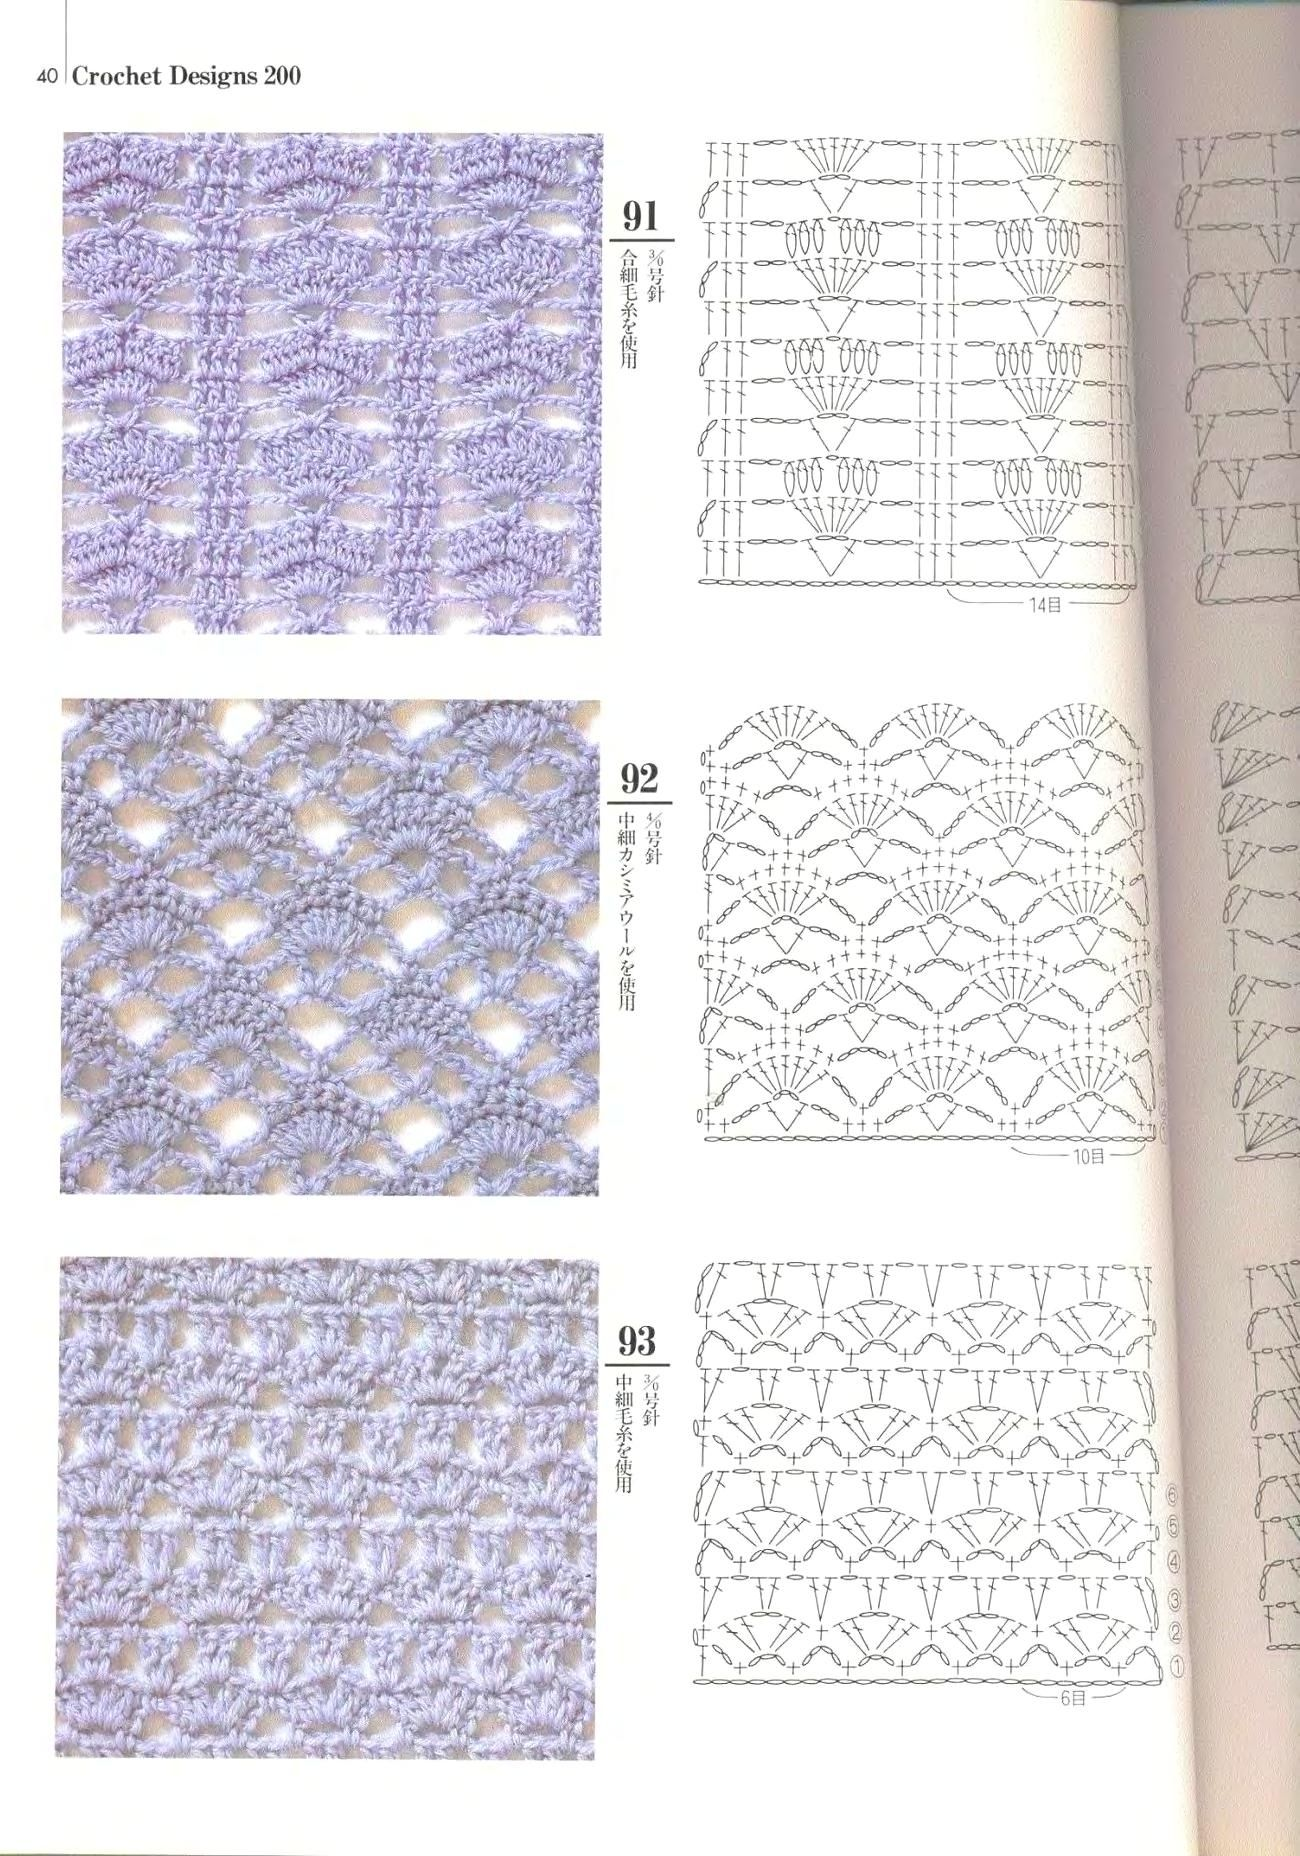 200_Crochet.patterns_Djv_38.jpg | Patrones | Pinterest | Puntadas ...